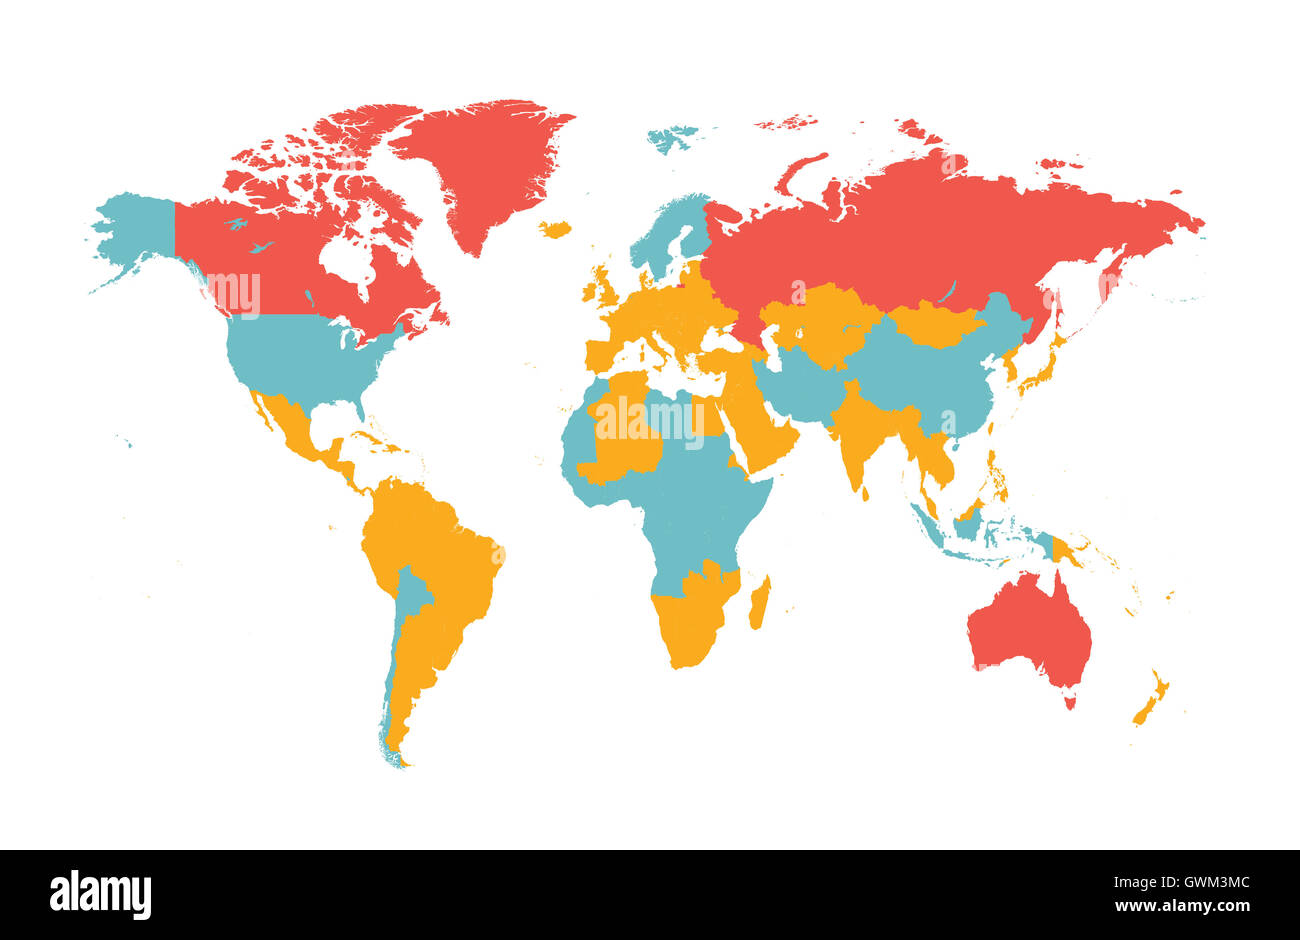 World map vector flat with countries stock photo 119070572 alamy world map vector flat with countries gumiabroncs Image collections